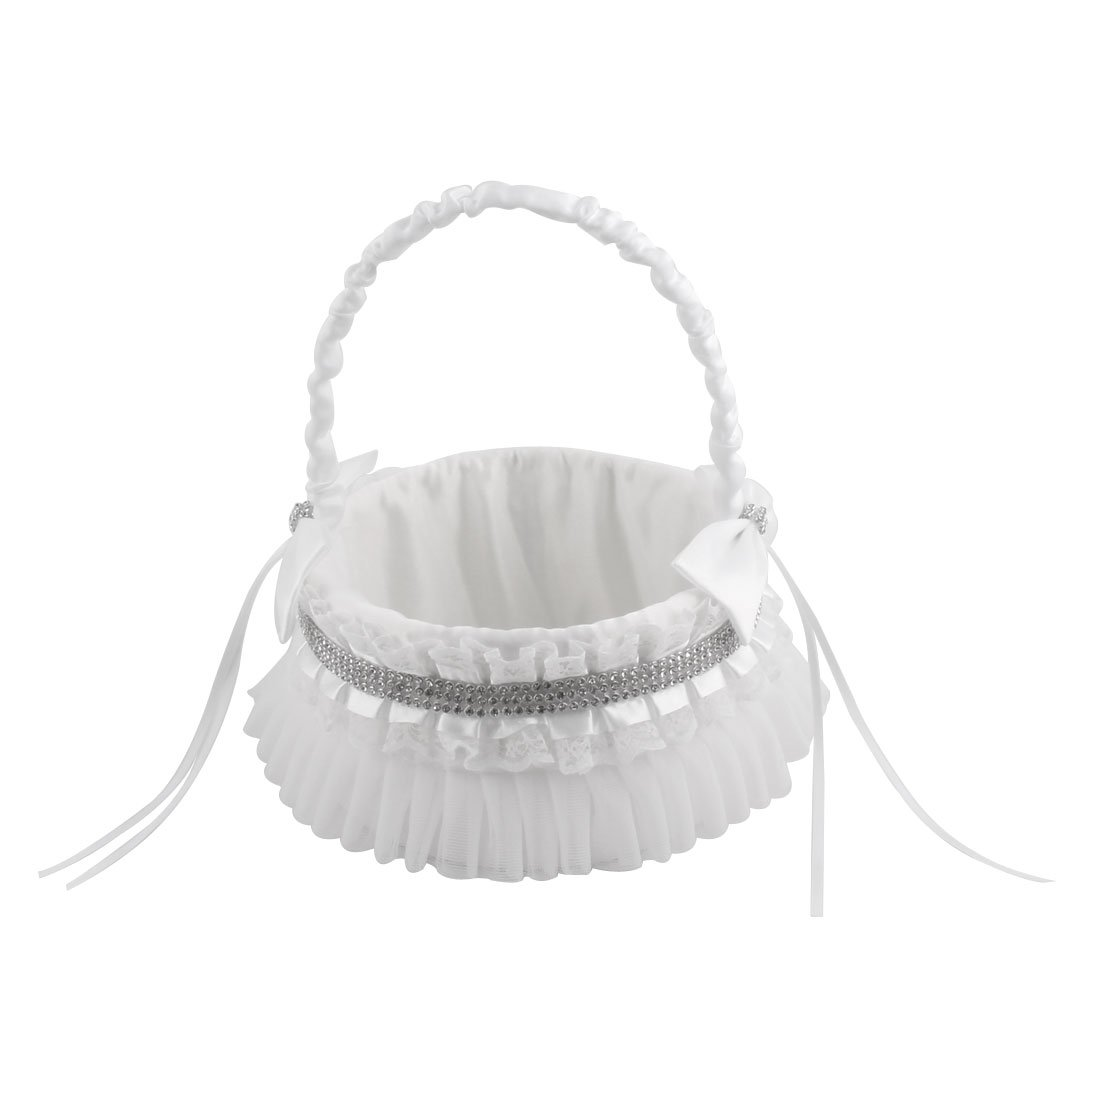 uxcell Satin Wedding Bowknots Faux Diamond Decor Petals Storage Flower Girl Carry Basket White by uxcell